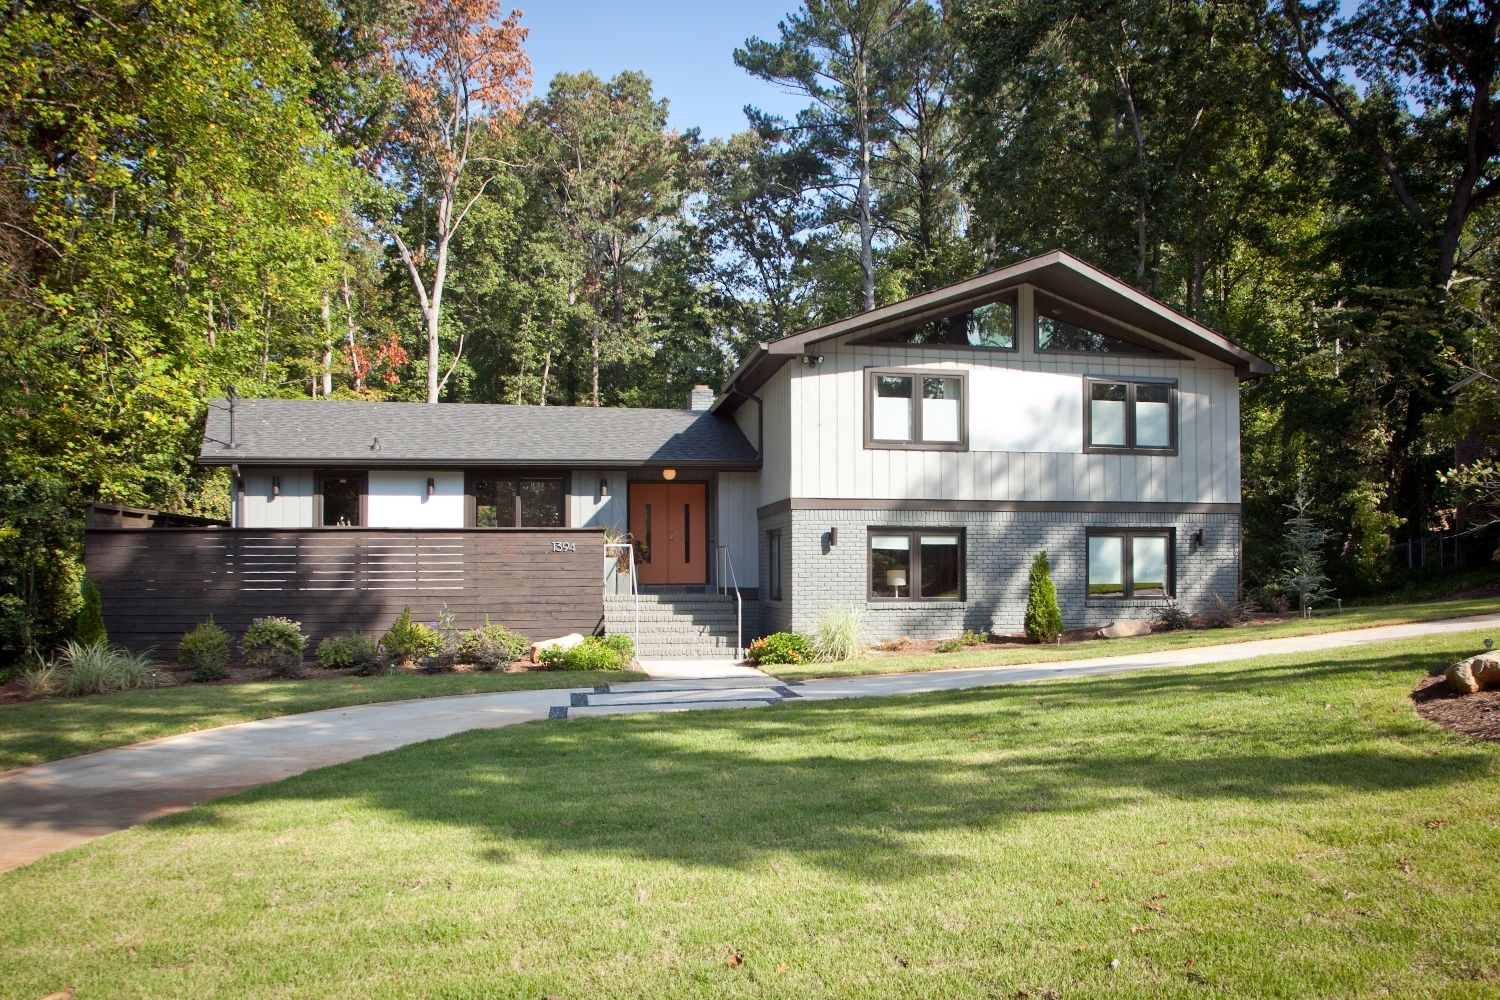 Split Level Exterior Remodel Picture Gallery 1394 Ragley Hall Road Atlanta Mid Century Modern